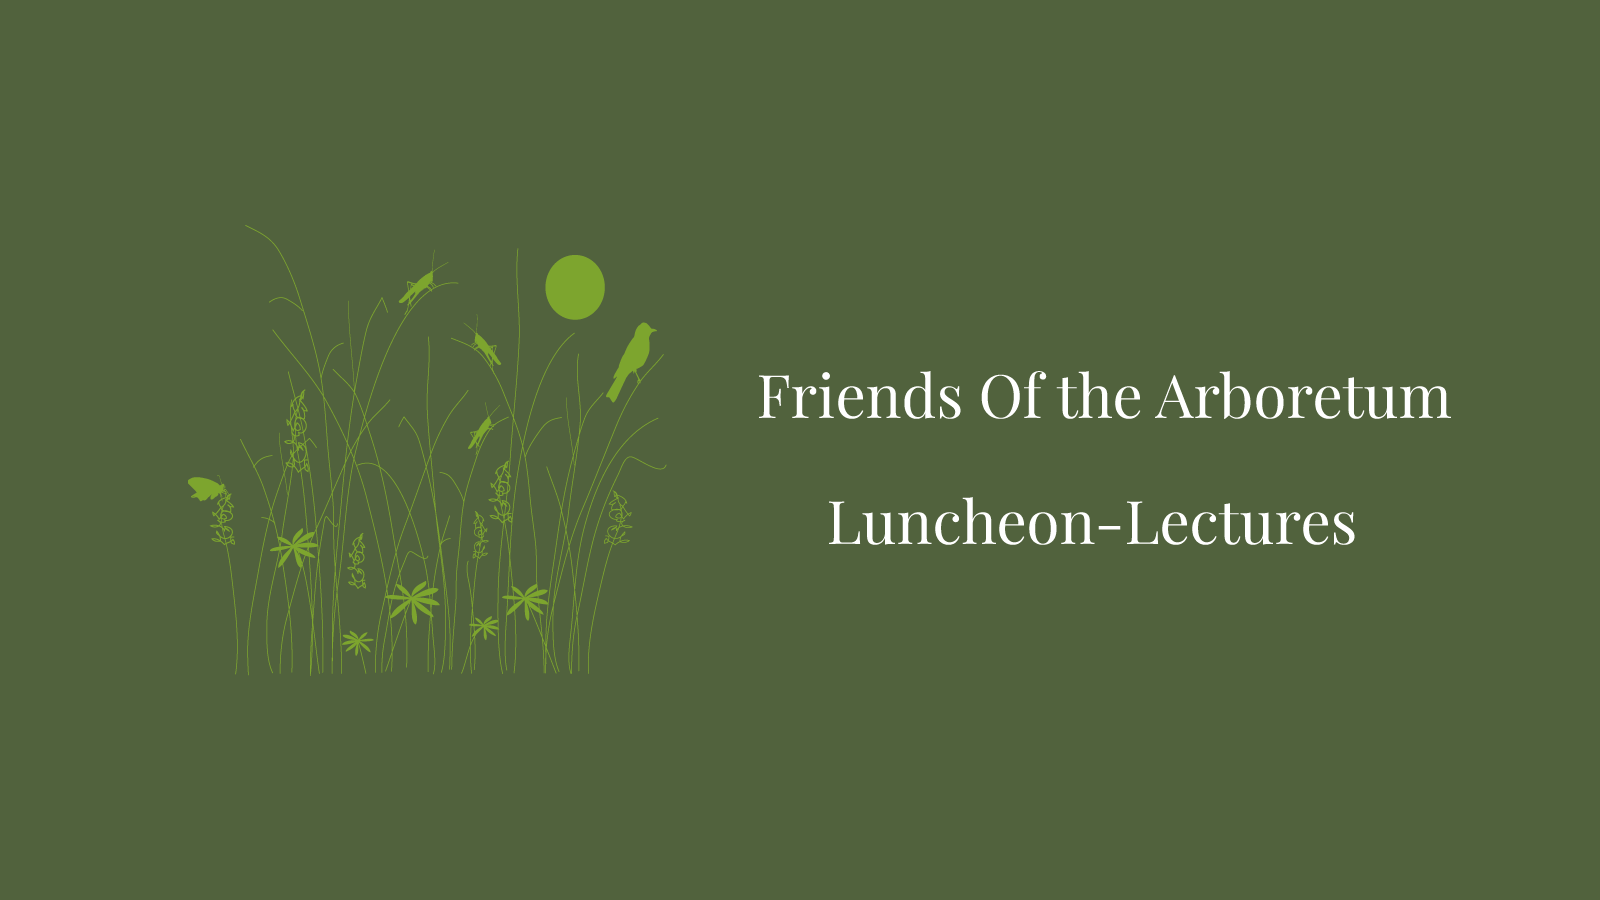 Friends of the Arboretum - Luncheon-Lectures